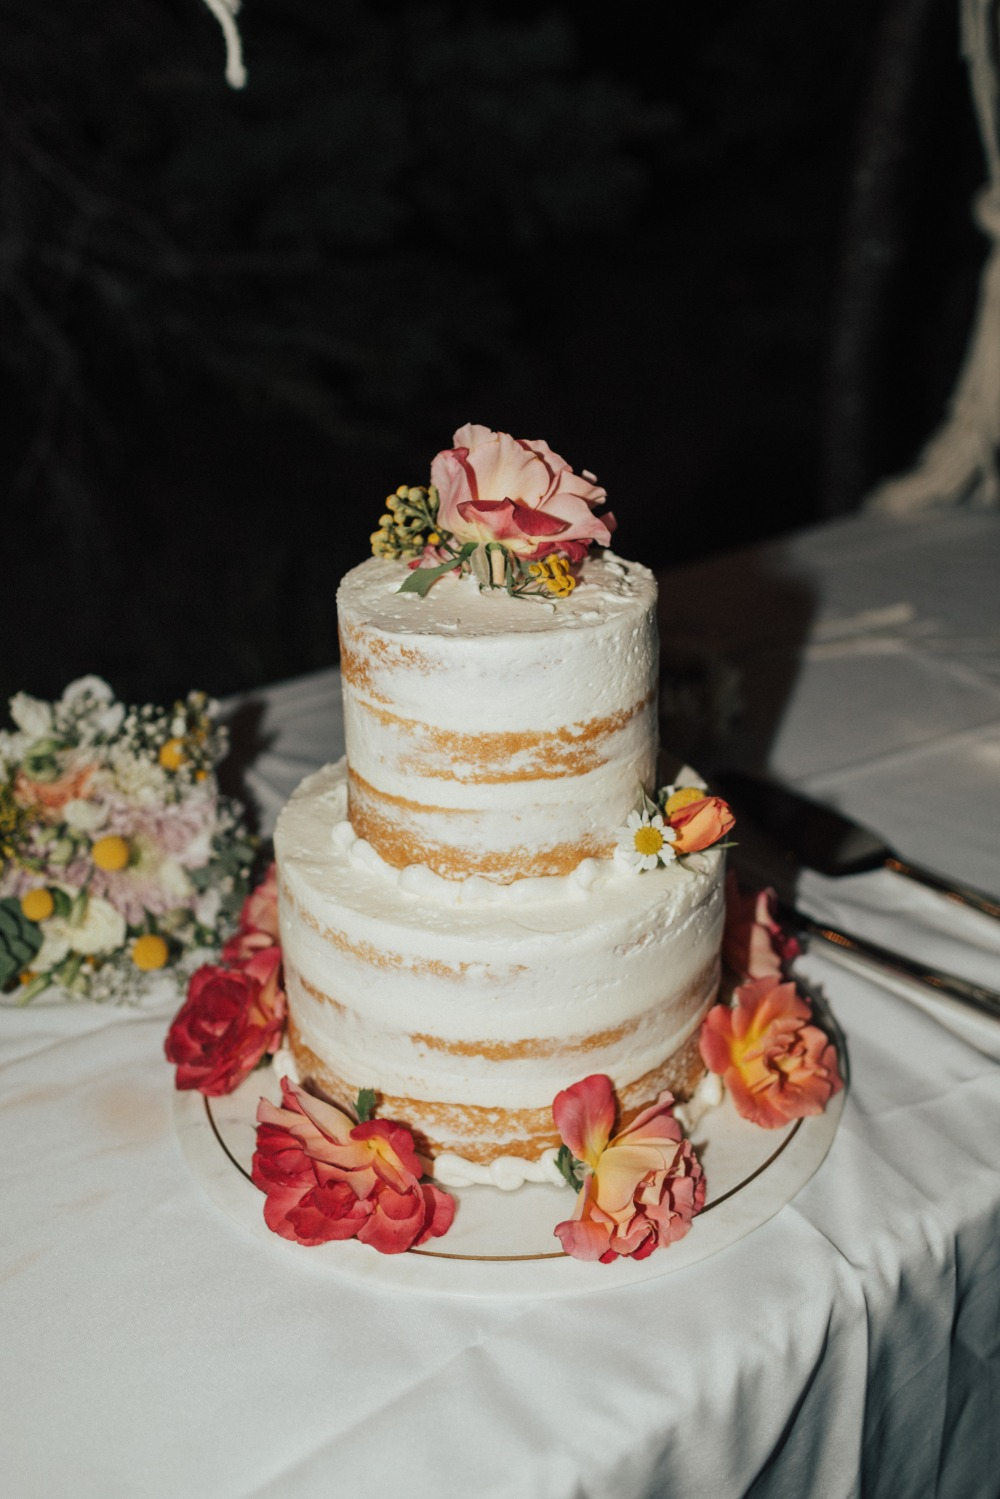 Naked cake with DIY florals added